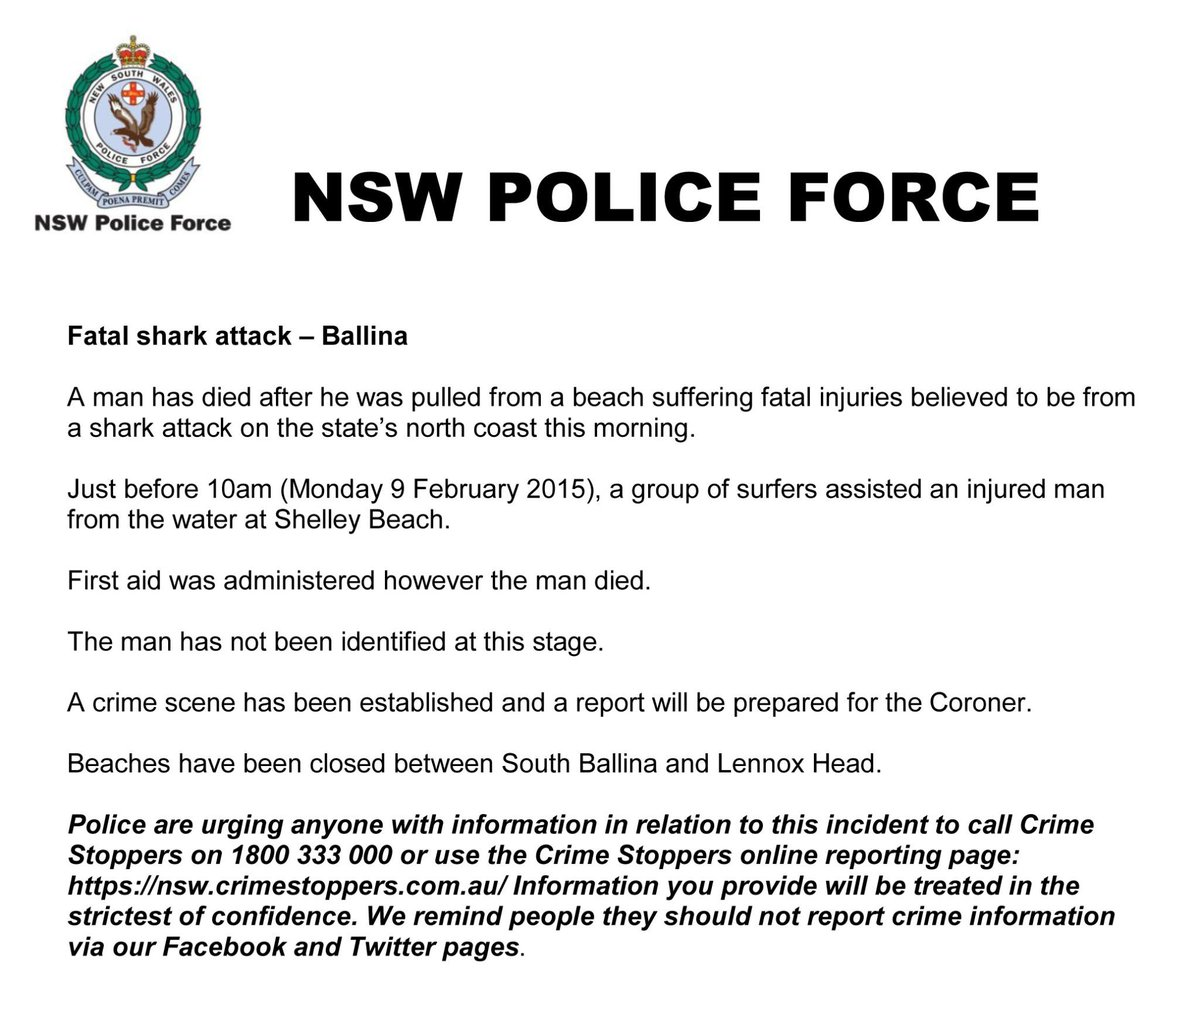 NSW Police Force on Twitter: